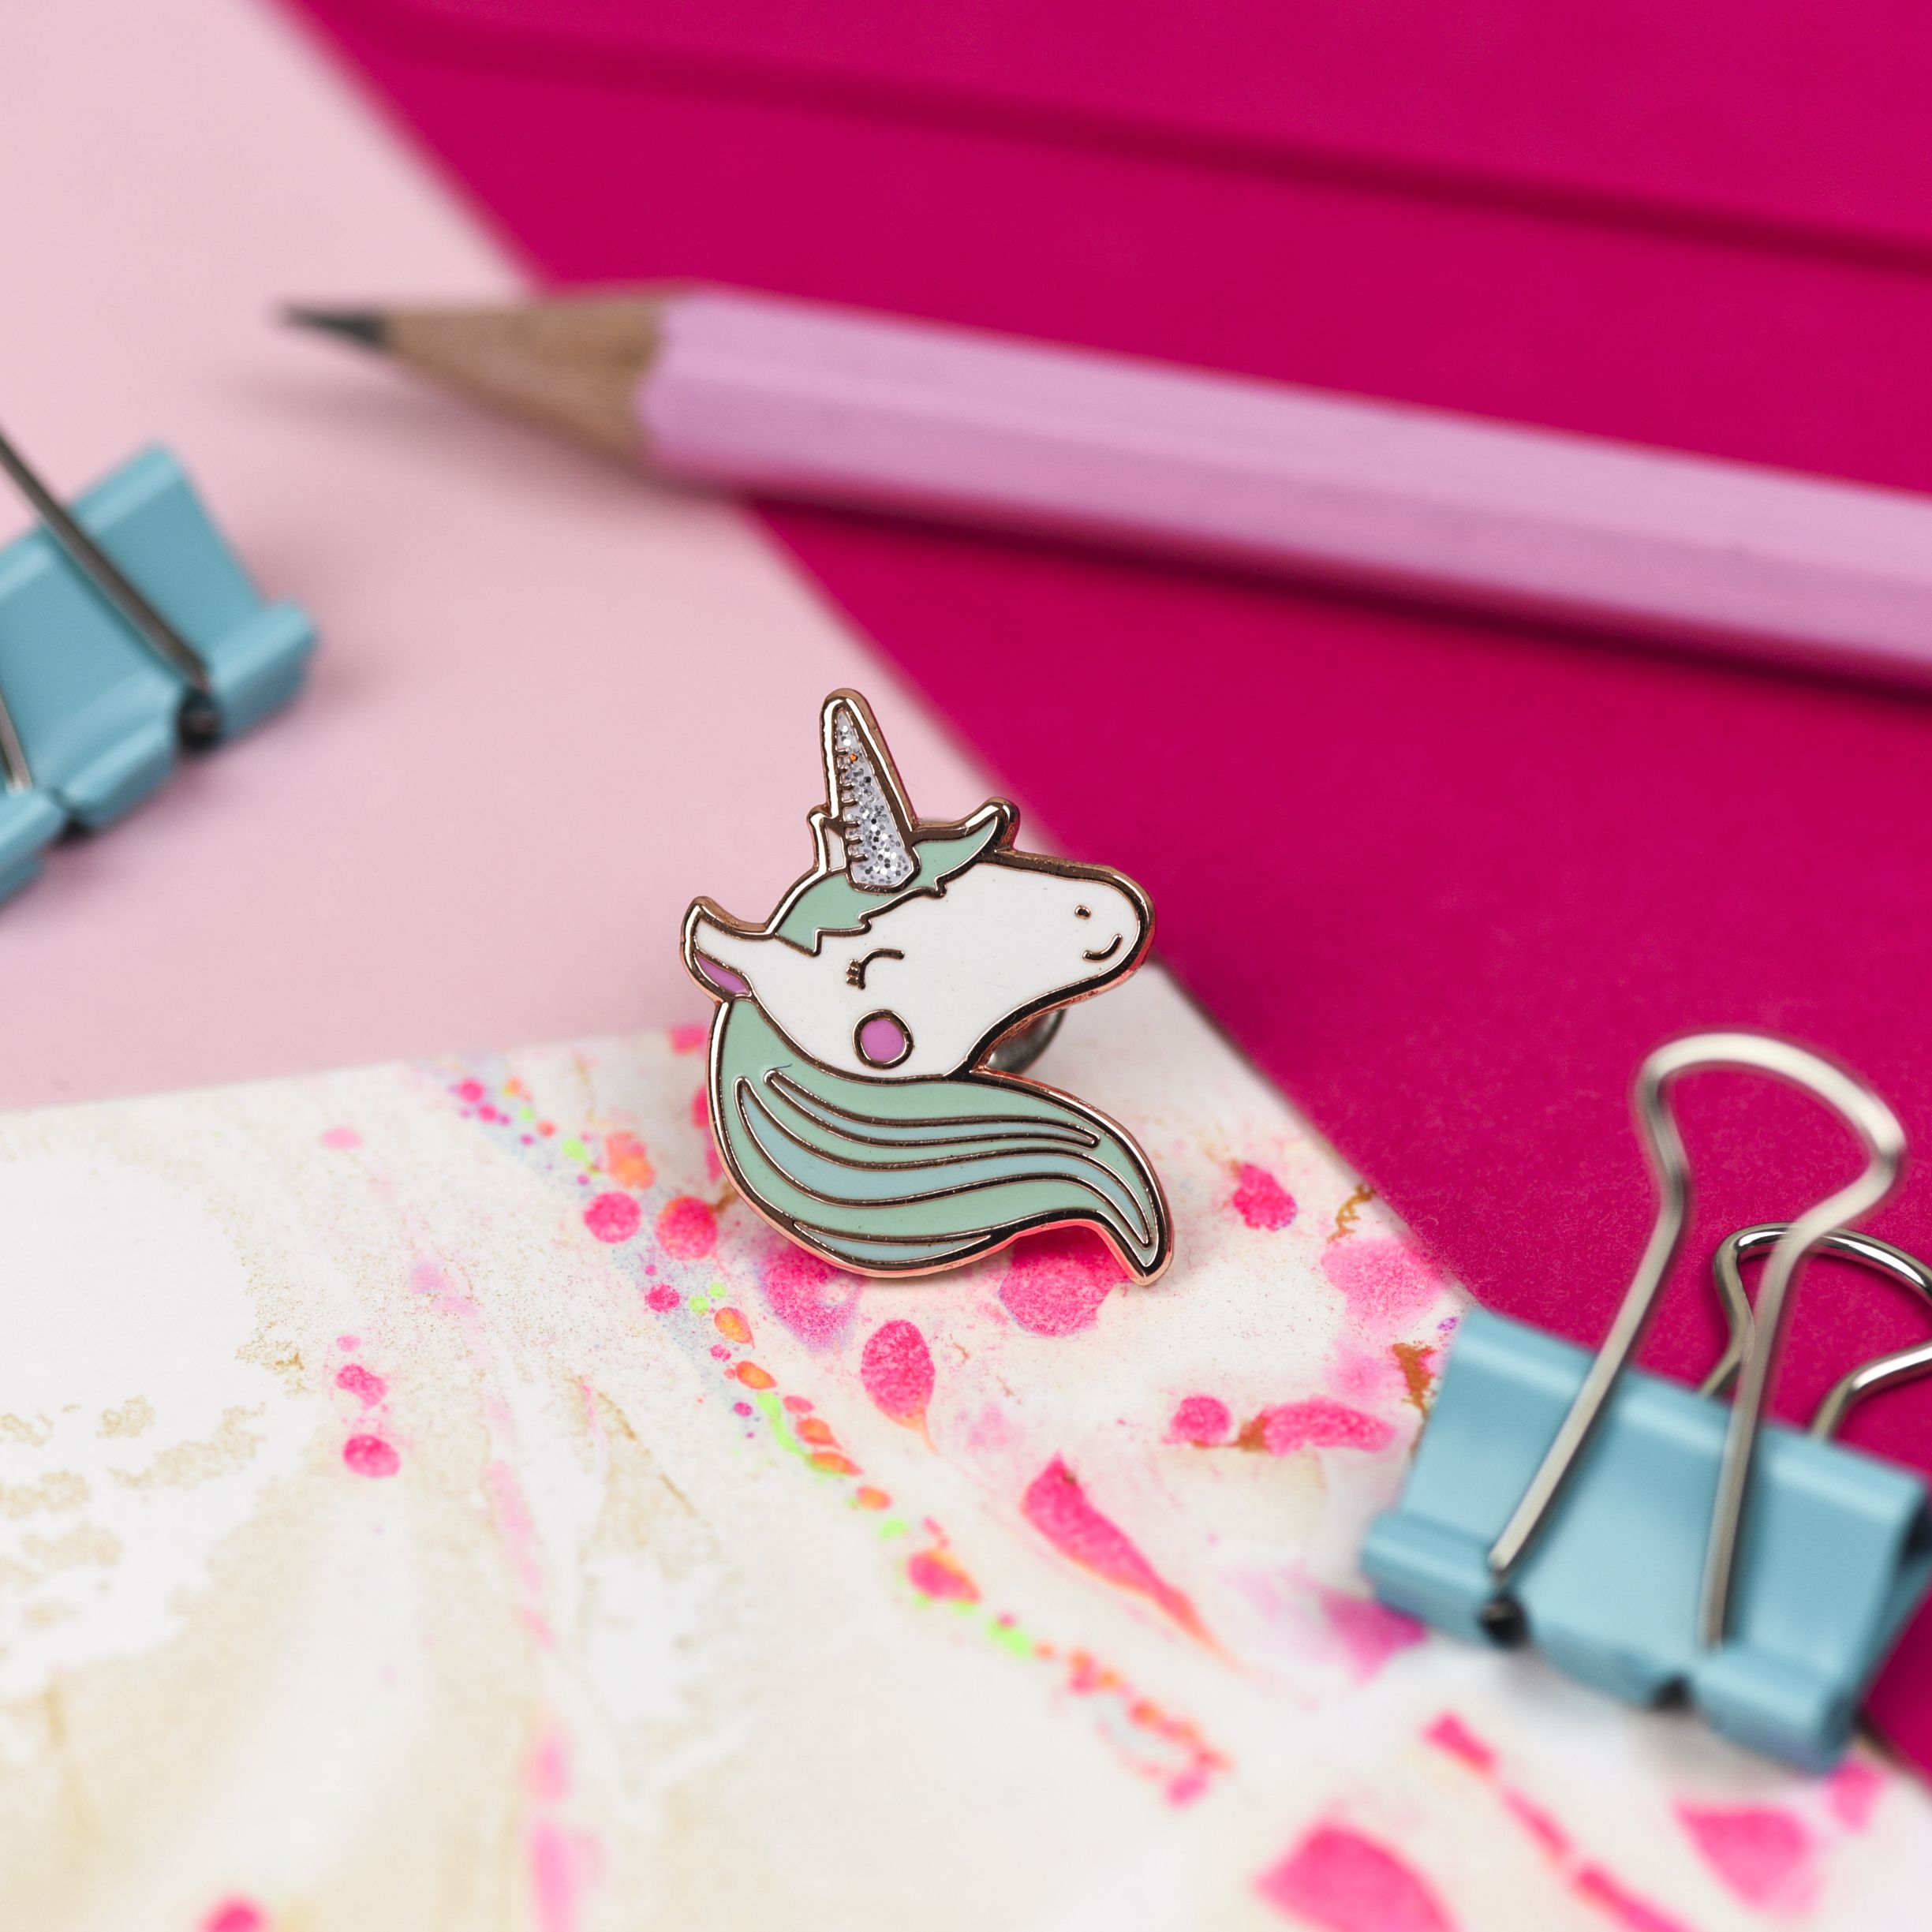 Unicorns rock. Enamel pins rock. What's not to love?